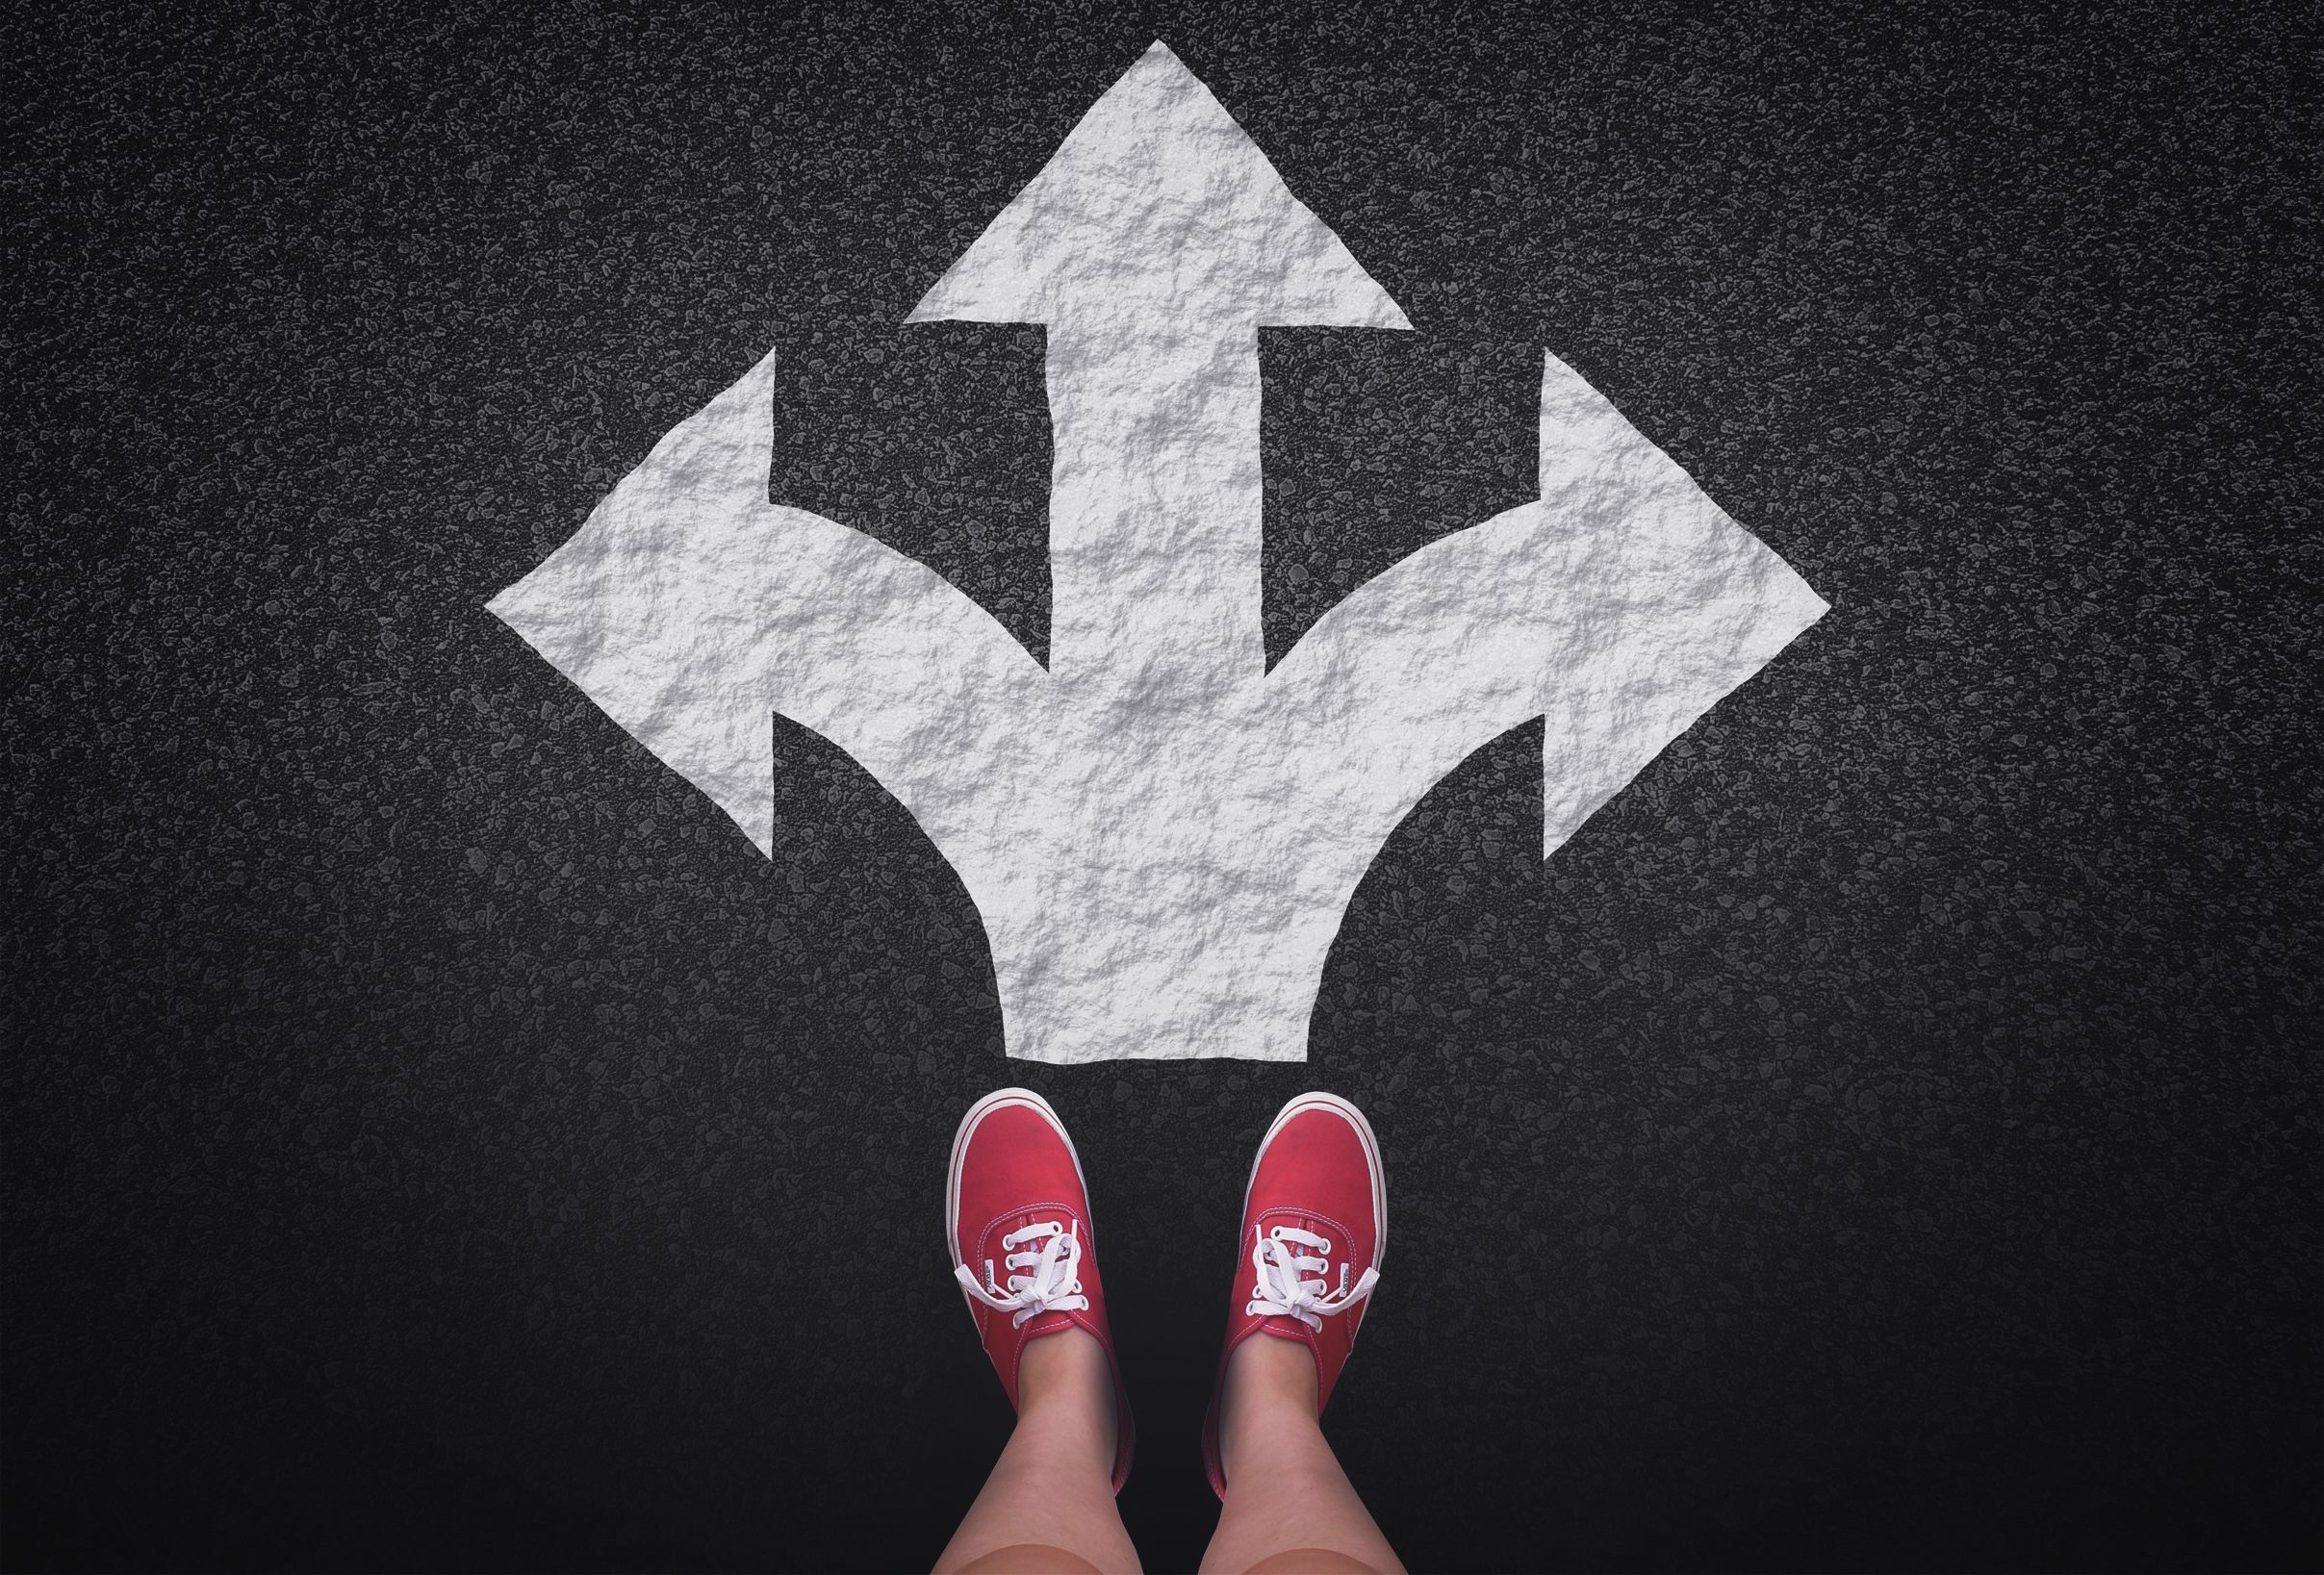 At a crossroads - Decisions and choices concept with large arrow signs, Achievement, Sign, Shoe, Select, HQ Photo